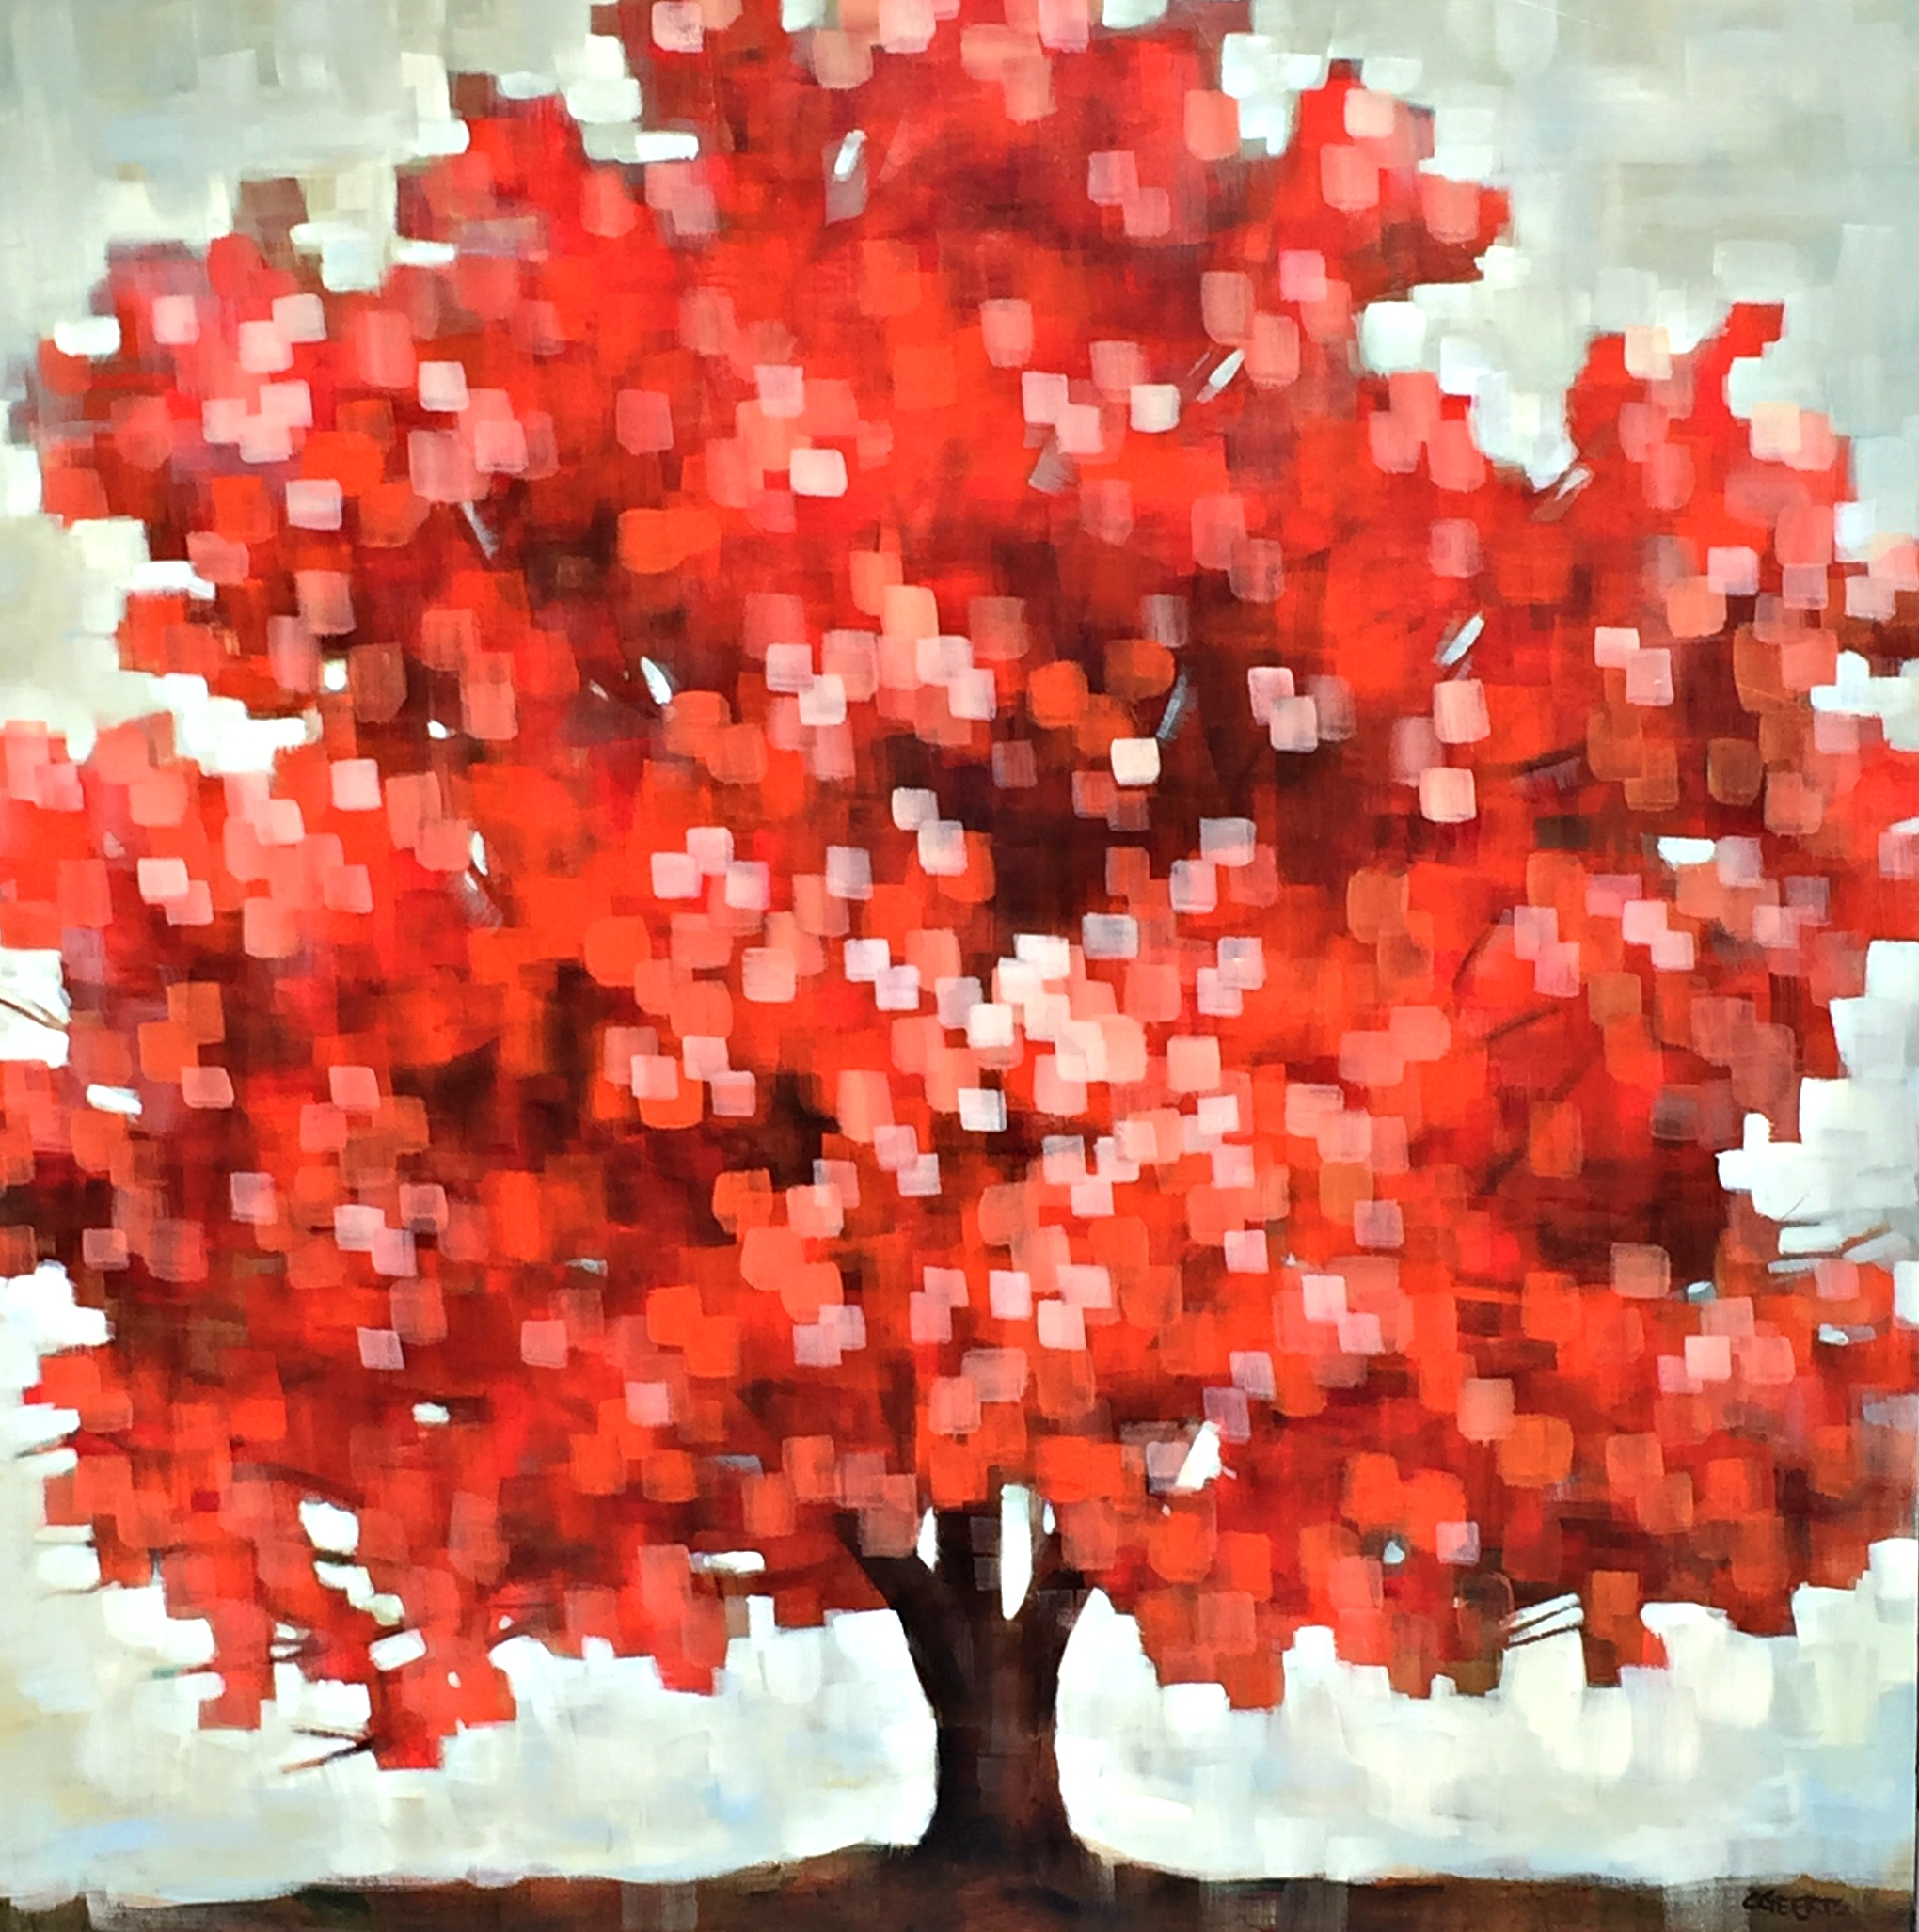 Vibration, acrylic tree painting by Connie Geerts | Effusion Art Gallery + Glass Studio, Invermere BC